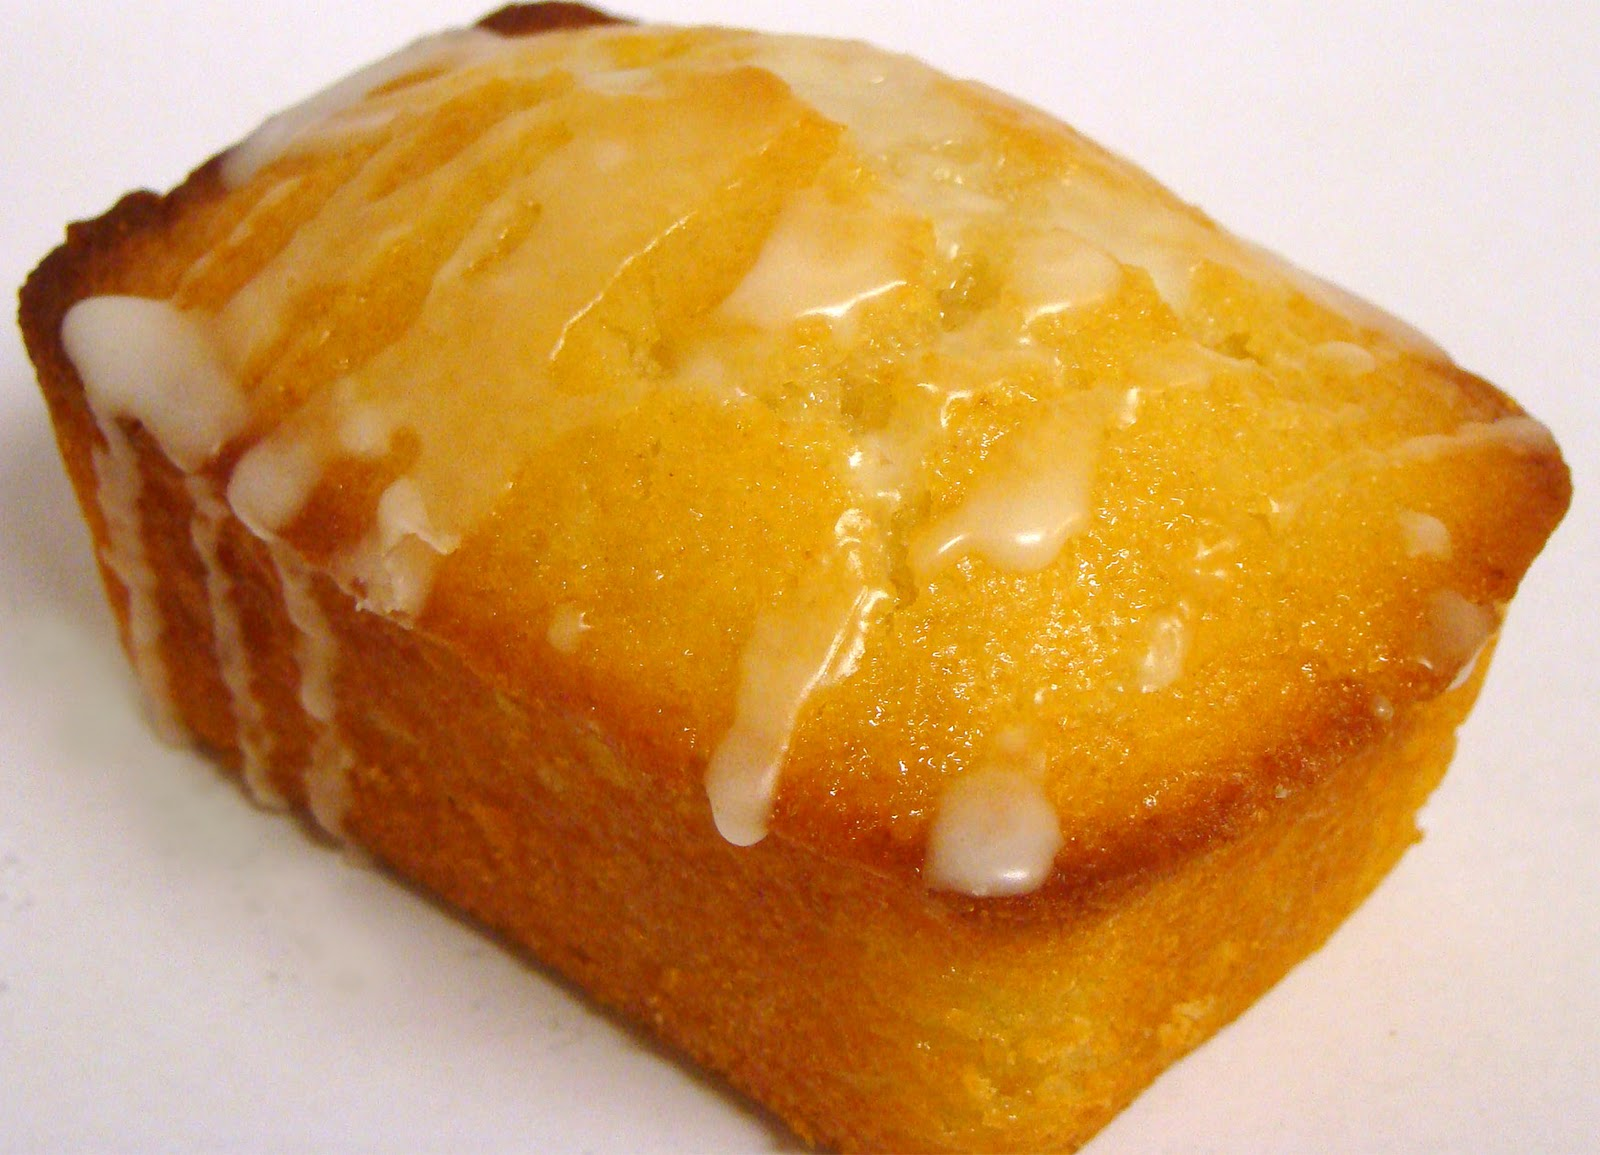 Barefoot Contessa Lemon Cake Recipe